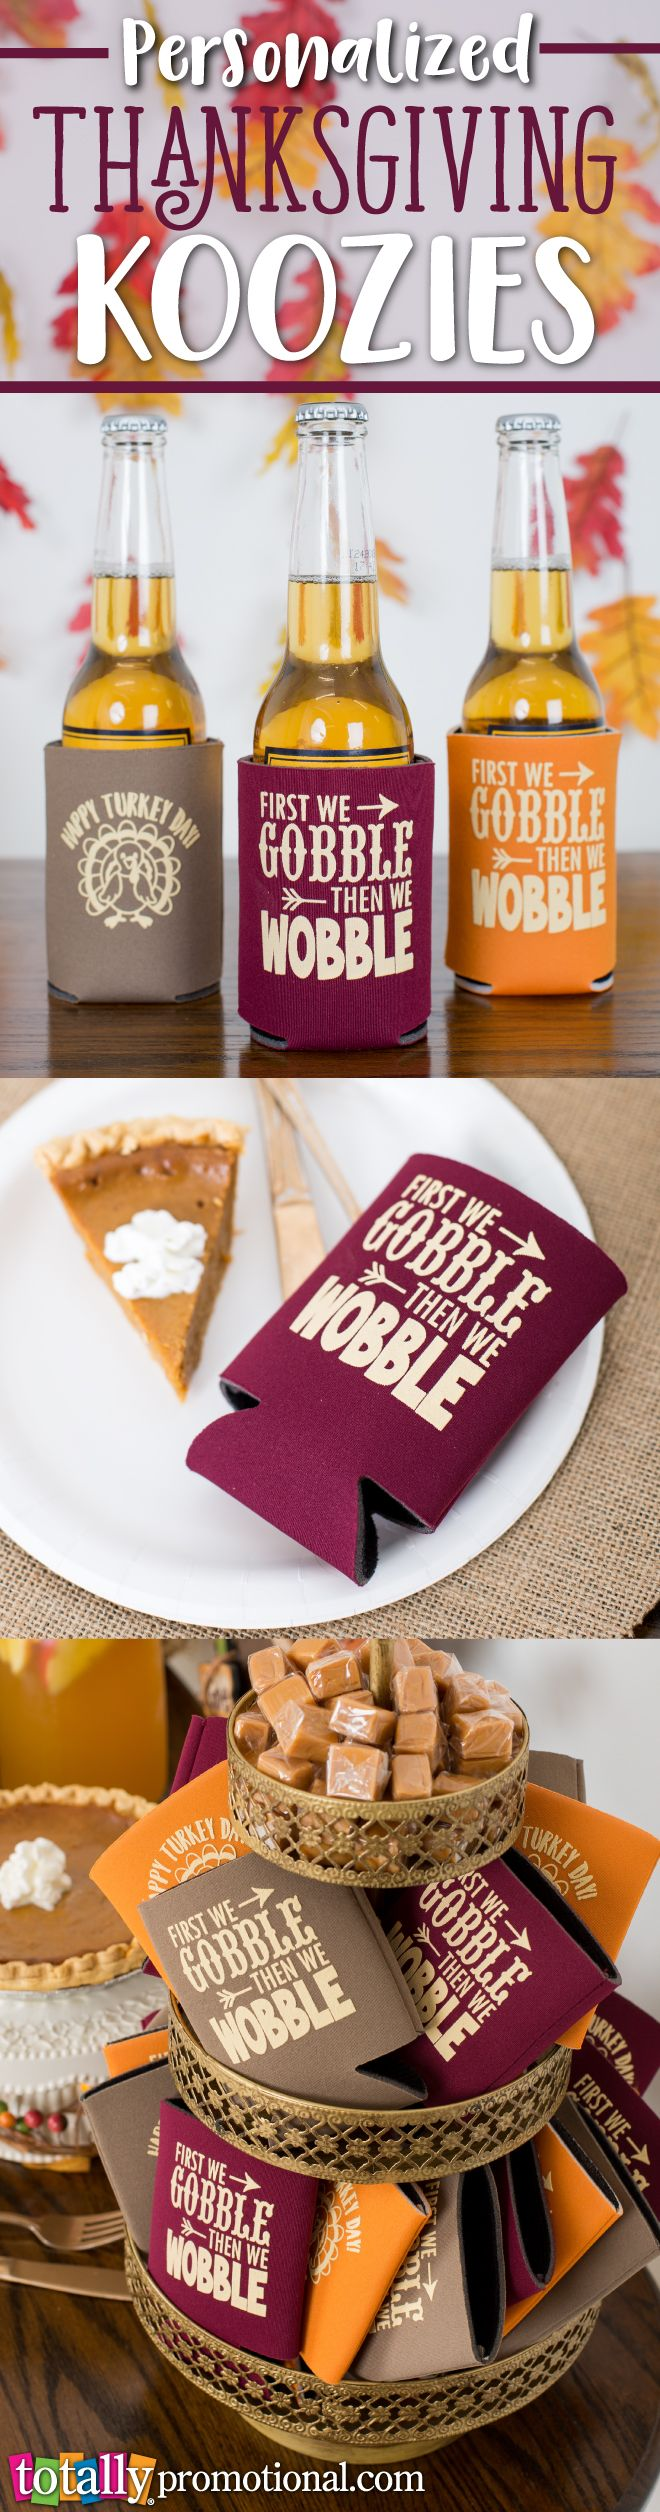 Personalized Thanksgiving #koozies compliment any Thanksgiving get together, event or party!  Koozies are perfect for any kind of beverage, bottles, cans or cups!  Browse our customizable Thanksgiving artwork designs and create your own koozie to make it yours!